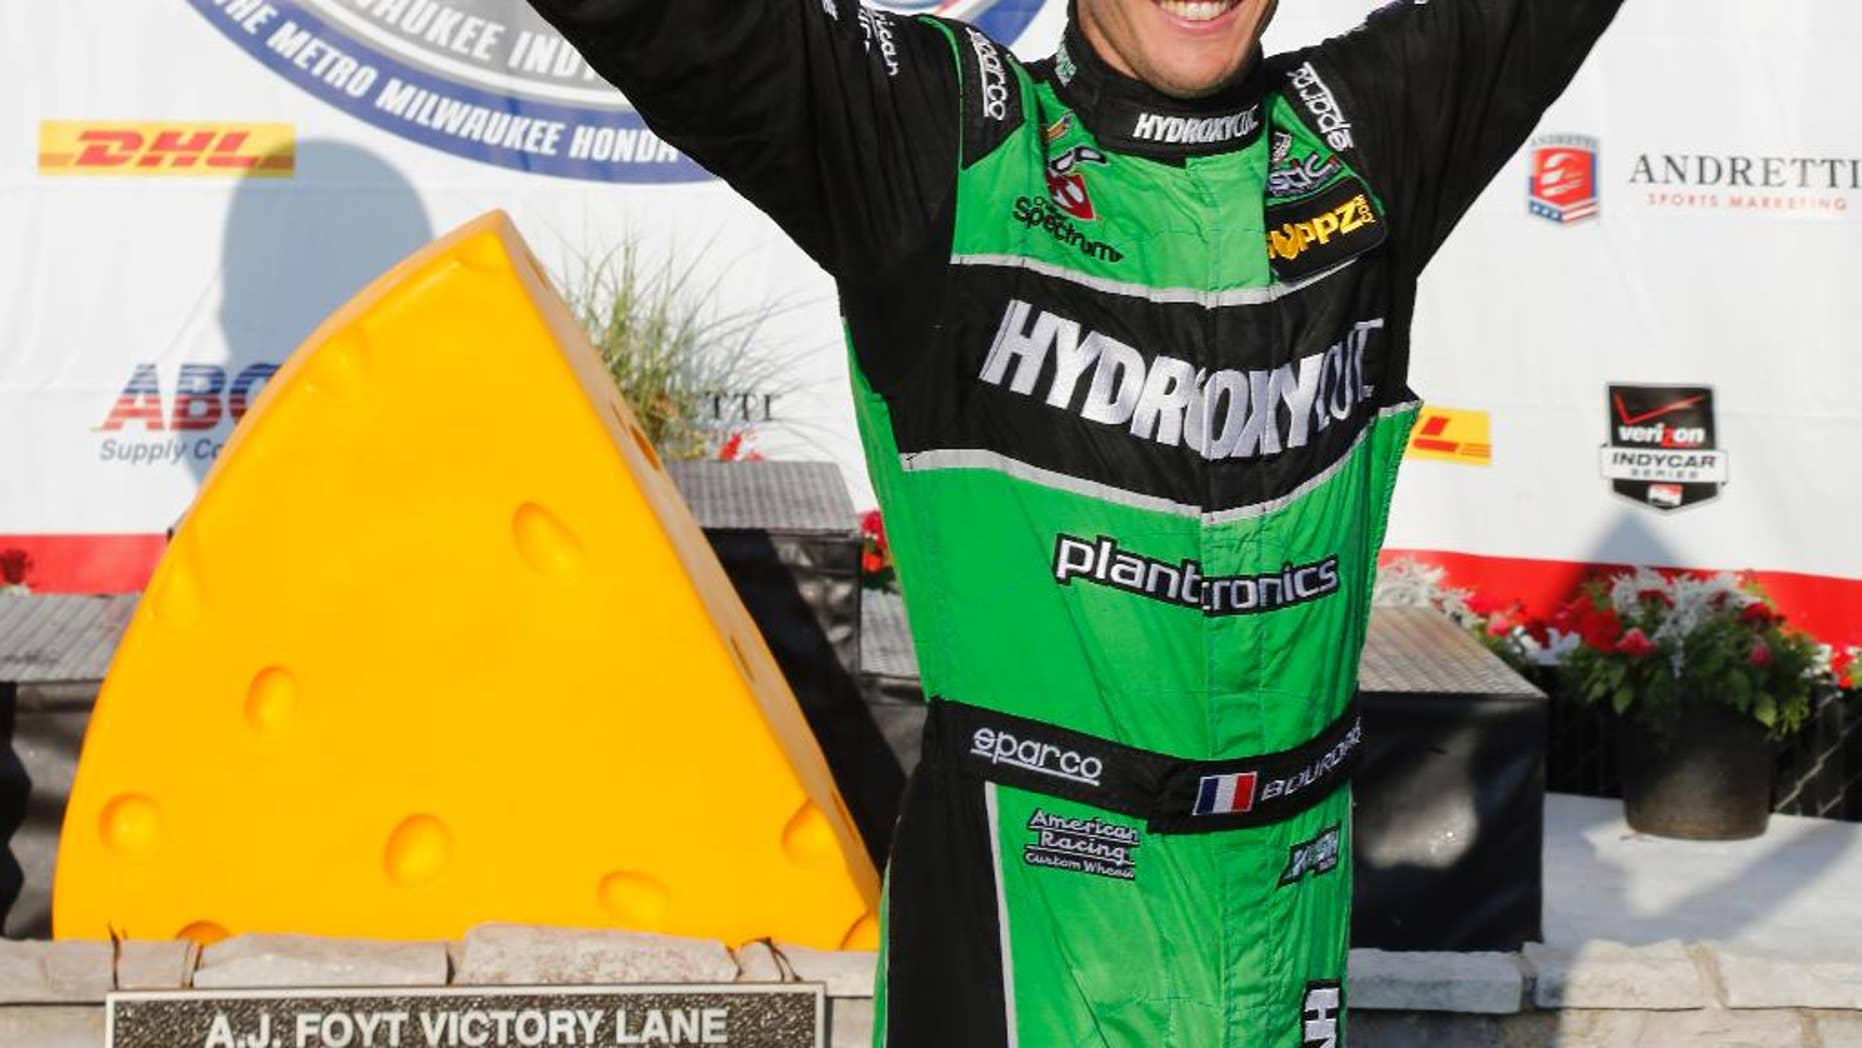 Sebastien Bourdais celebrates in the winners circle after the IndyCar Series race at the Milwaukee Mile in West Allis, Wis., Sunday, July 12, 2015. (AP Photo/Jeffrey Phelps)